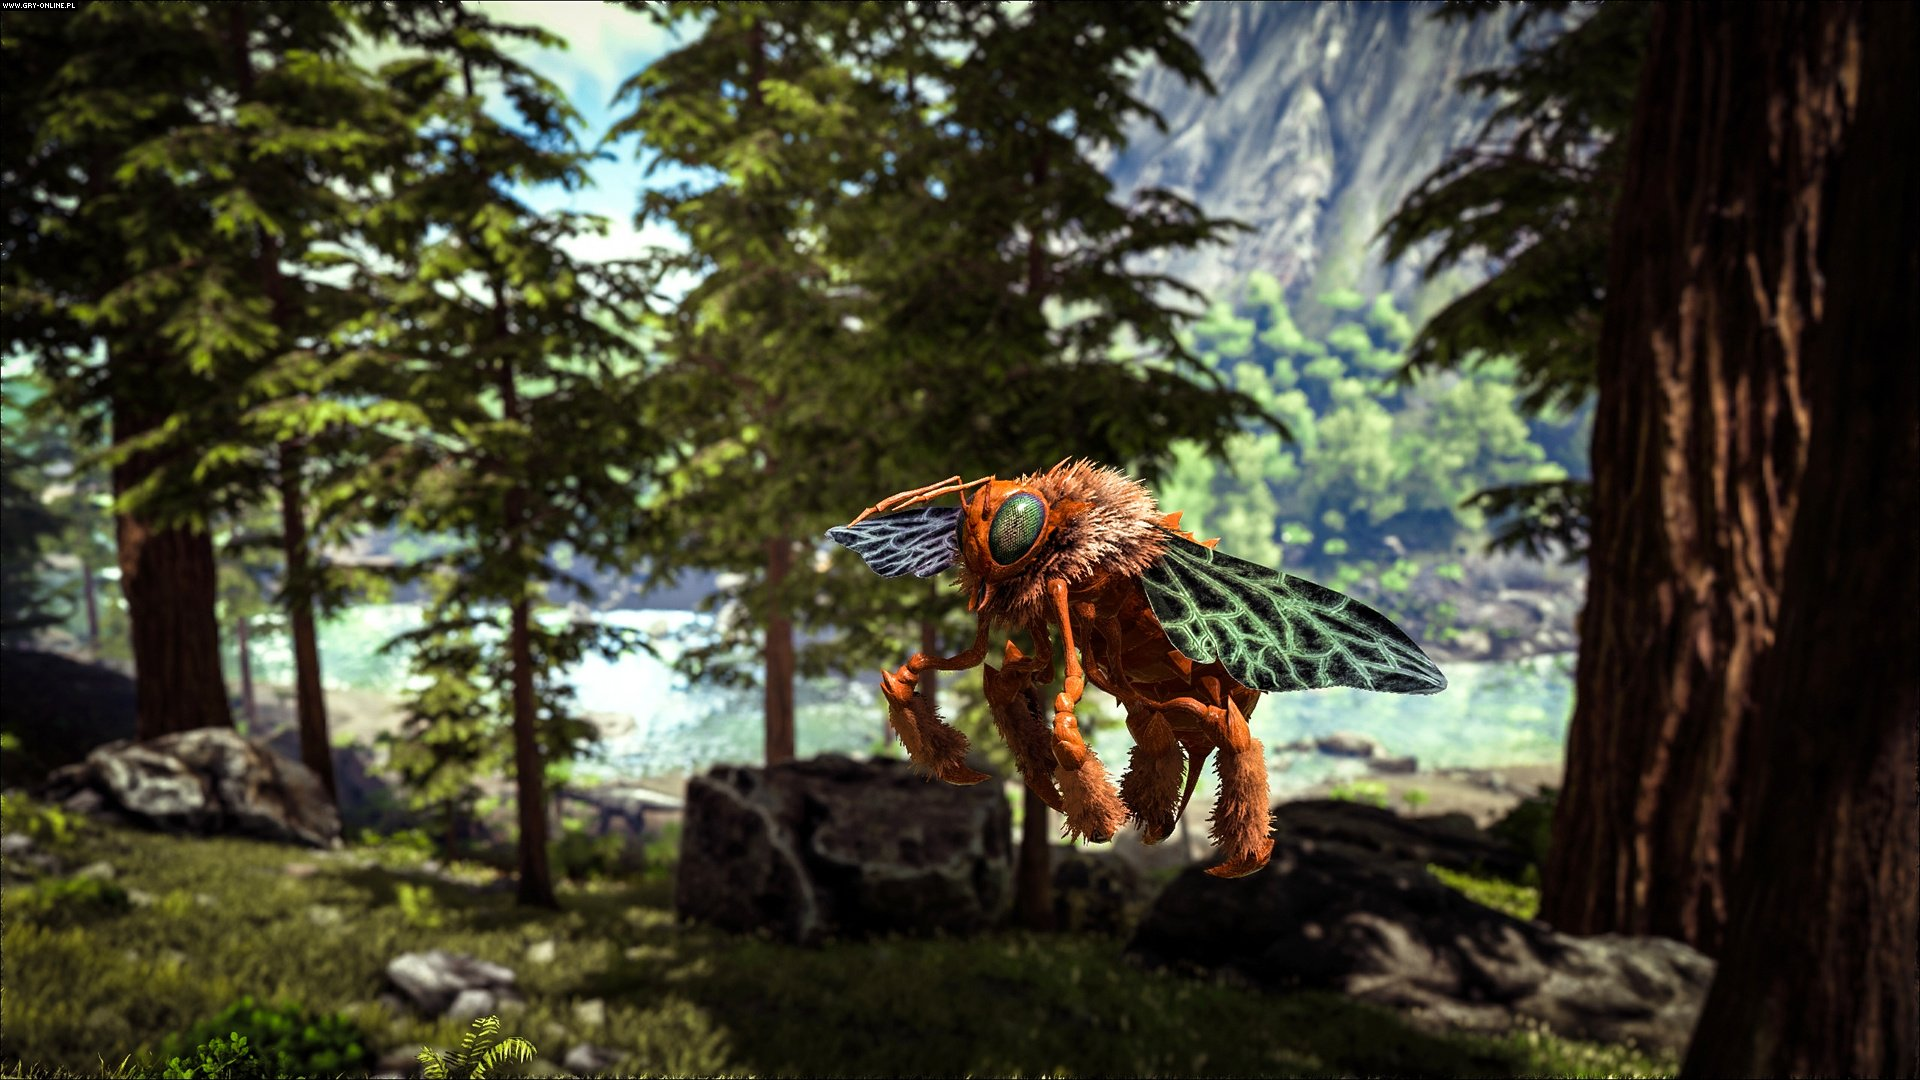 ARK: Survival Evolved PC Games Image 7/110, Studio Wildcard